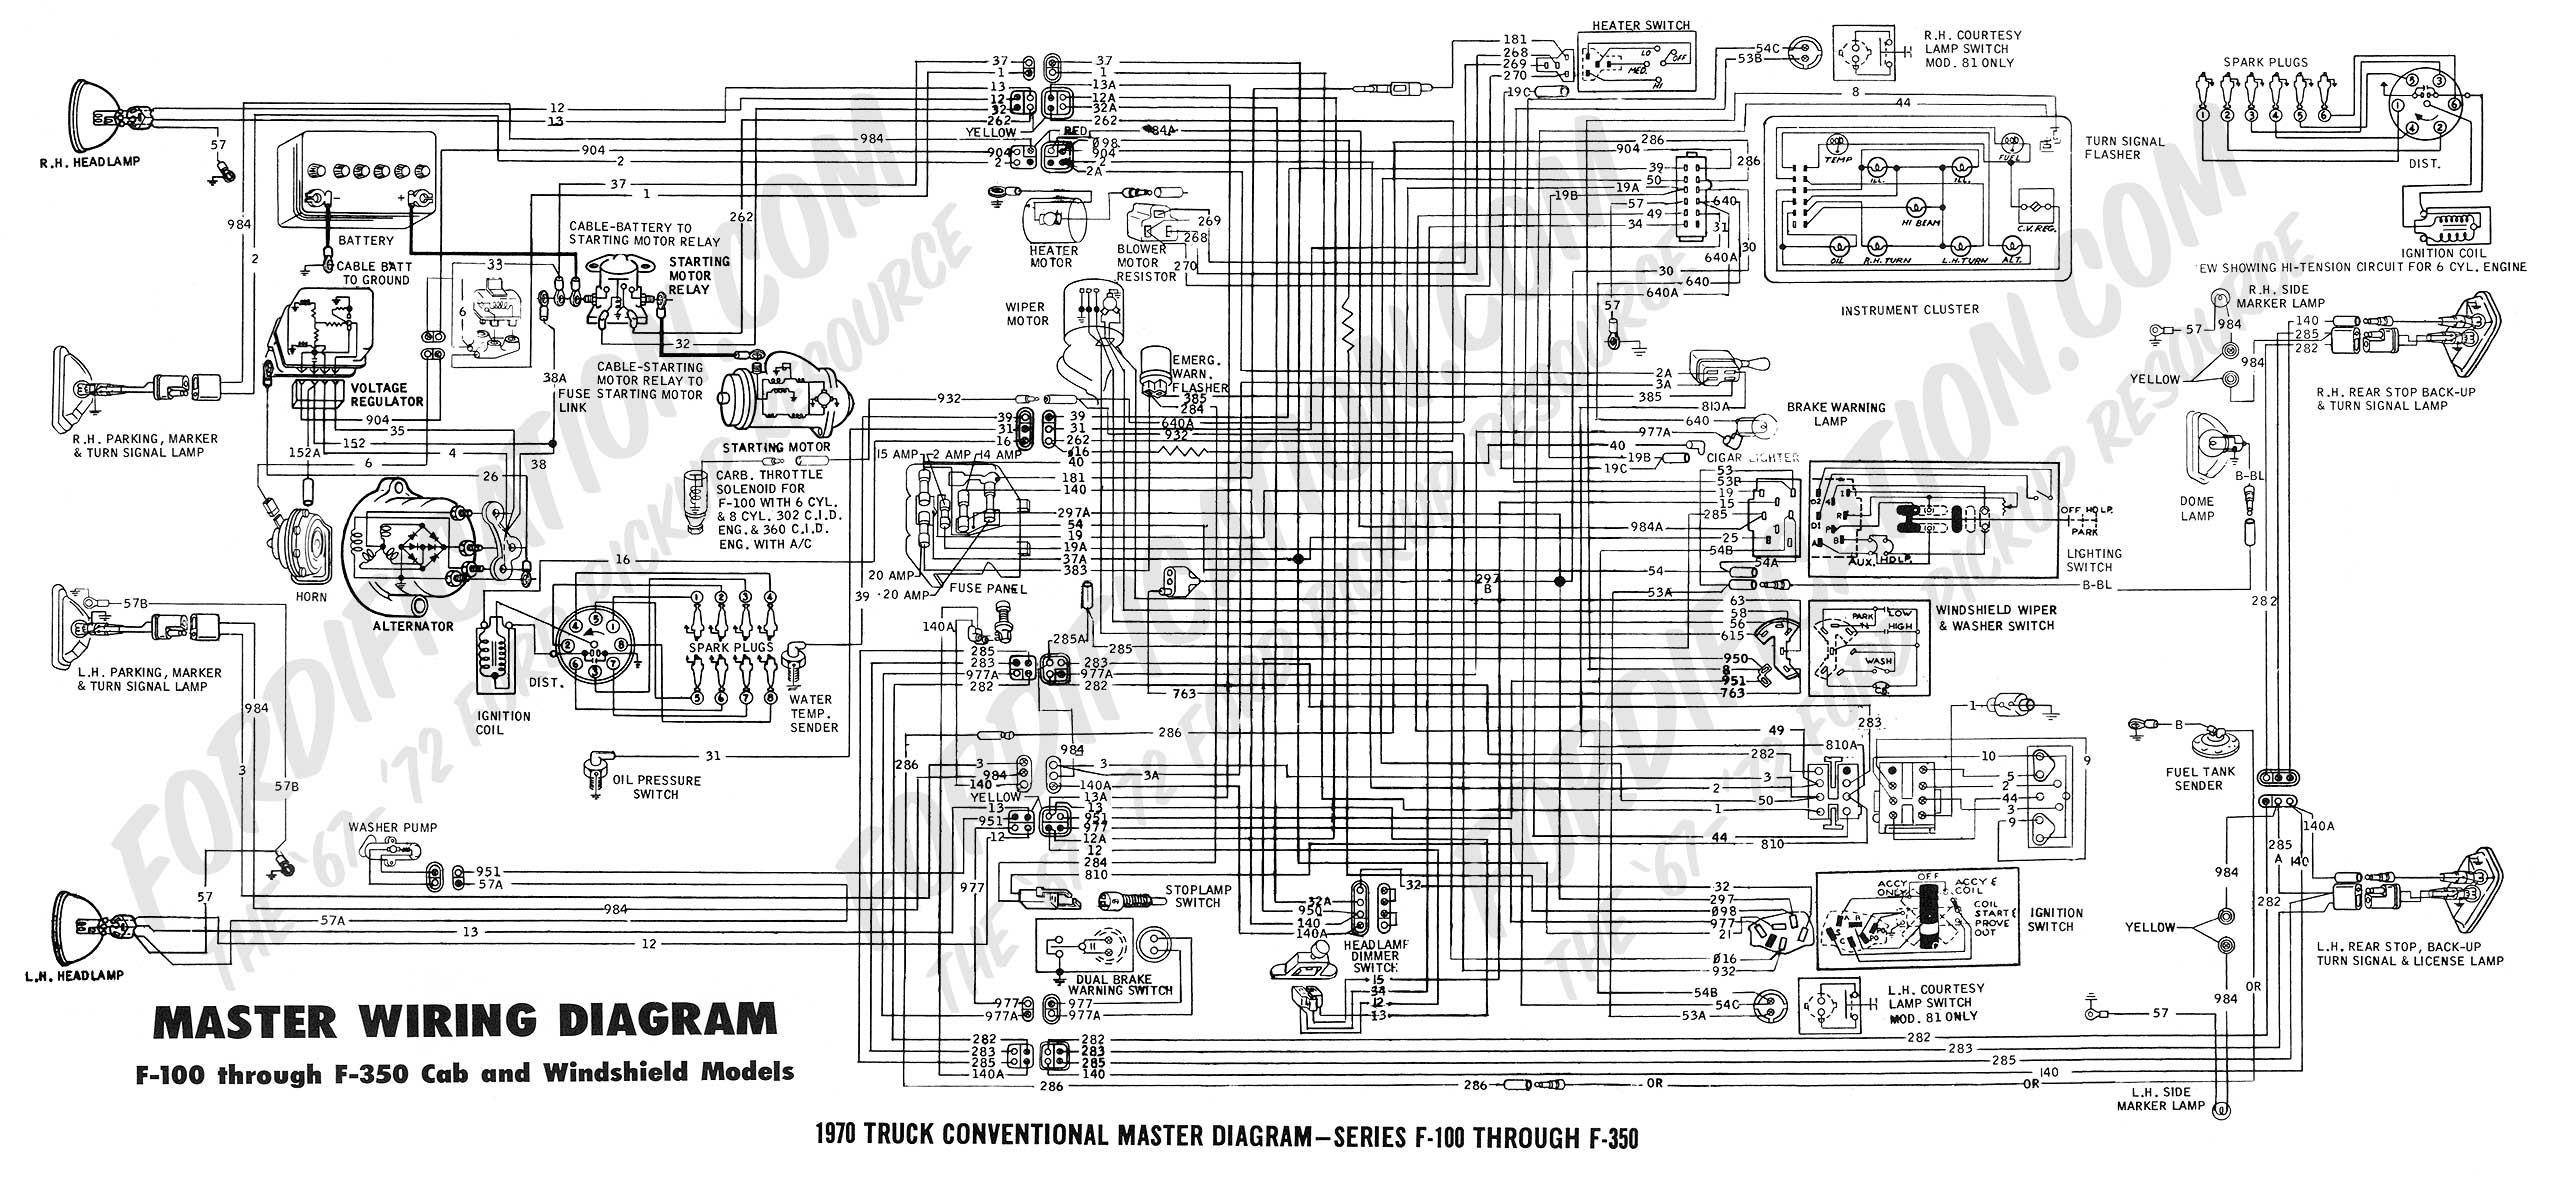 2002 Ford F 250 Super Duty Fuse Diagram Wiring Data U2022 F700 1986 F350 Diesel Diy Enthusiasts Diagrams Rh Broadwaycomputers Us 2007 E350